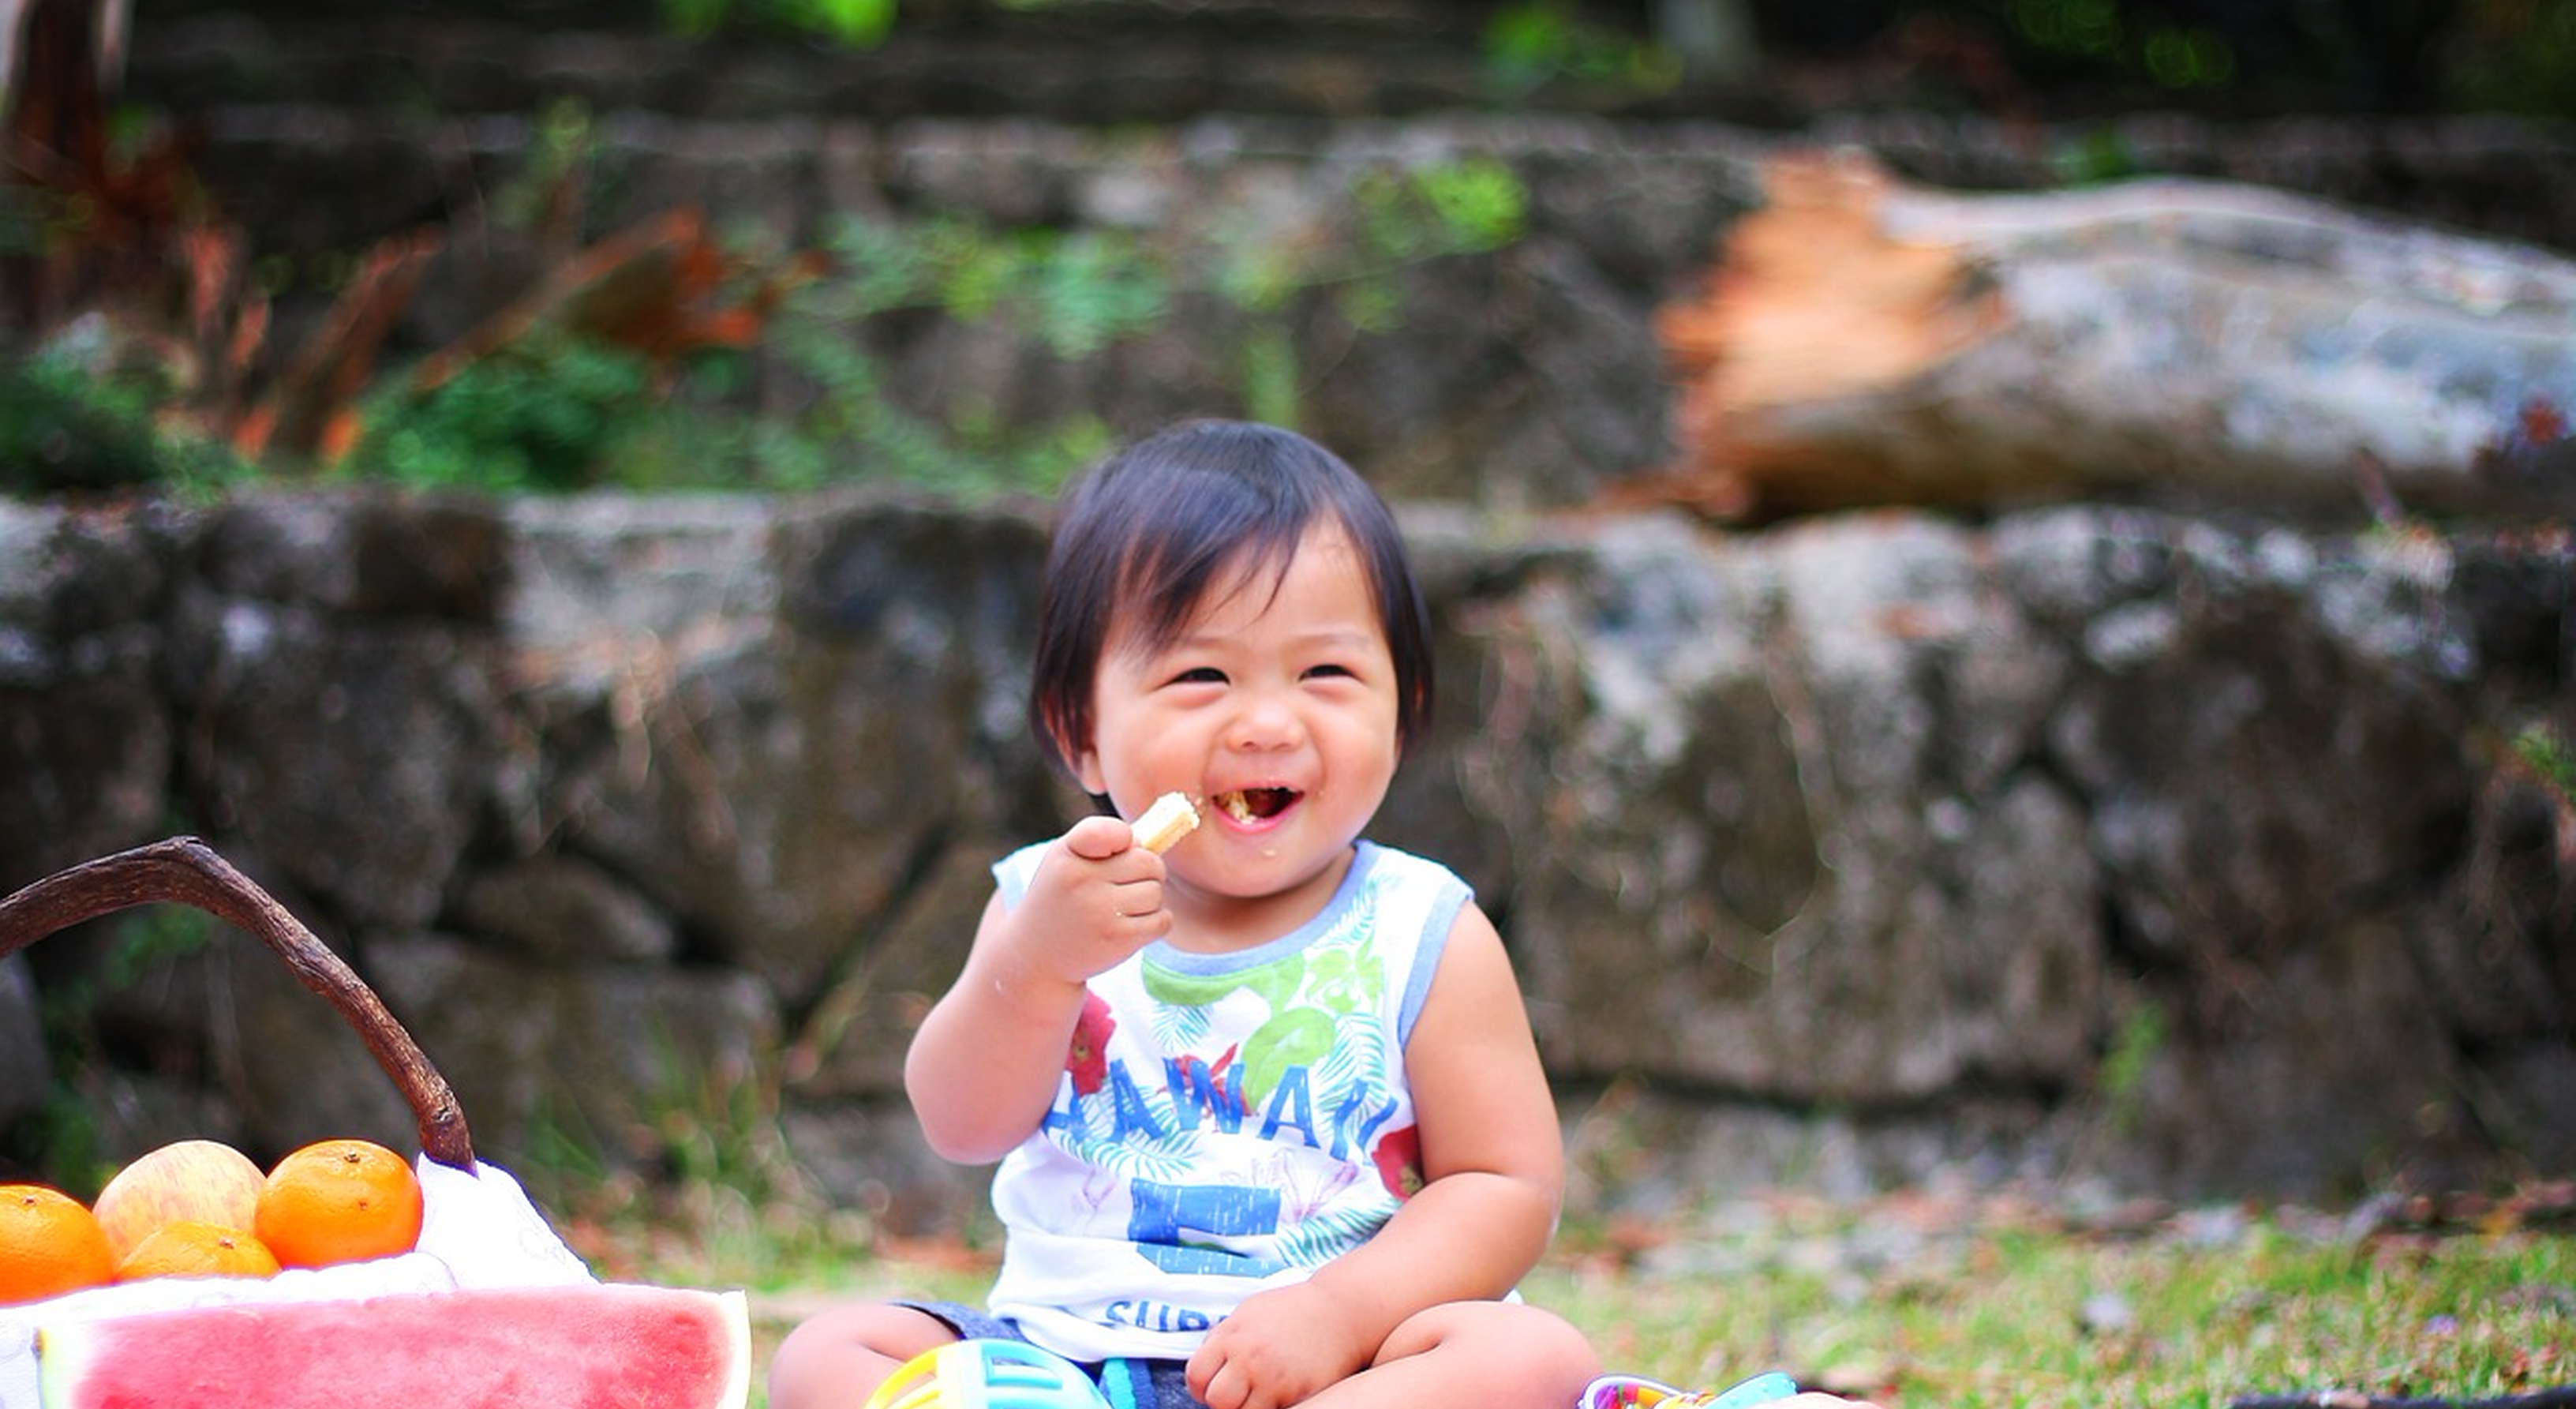 Toddler eating snacks outdoors